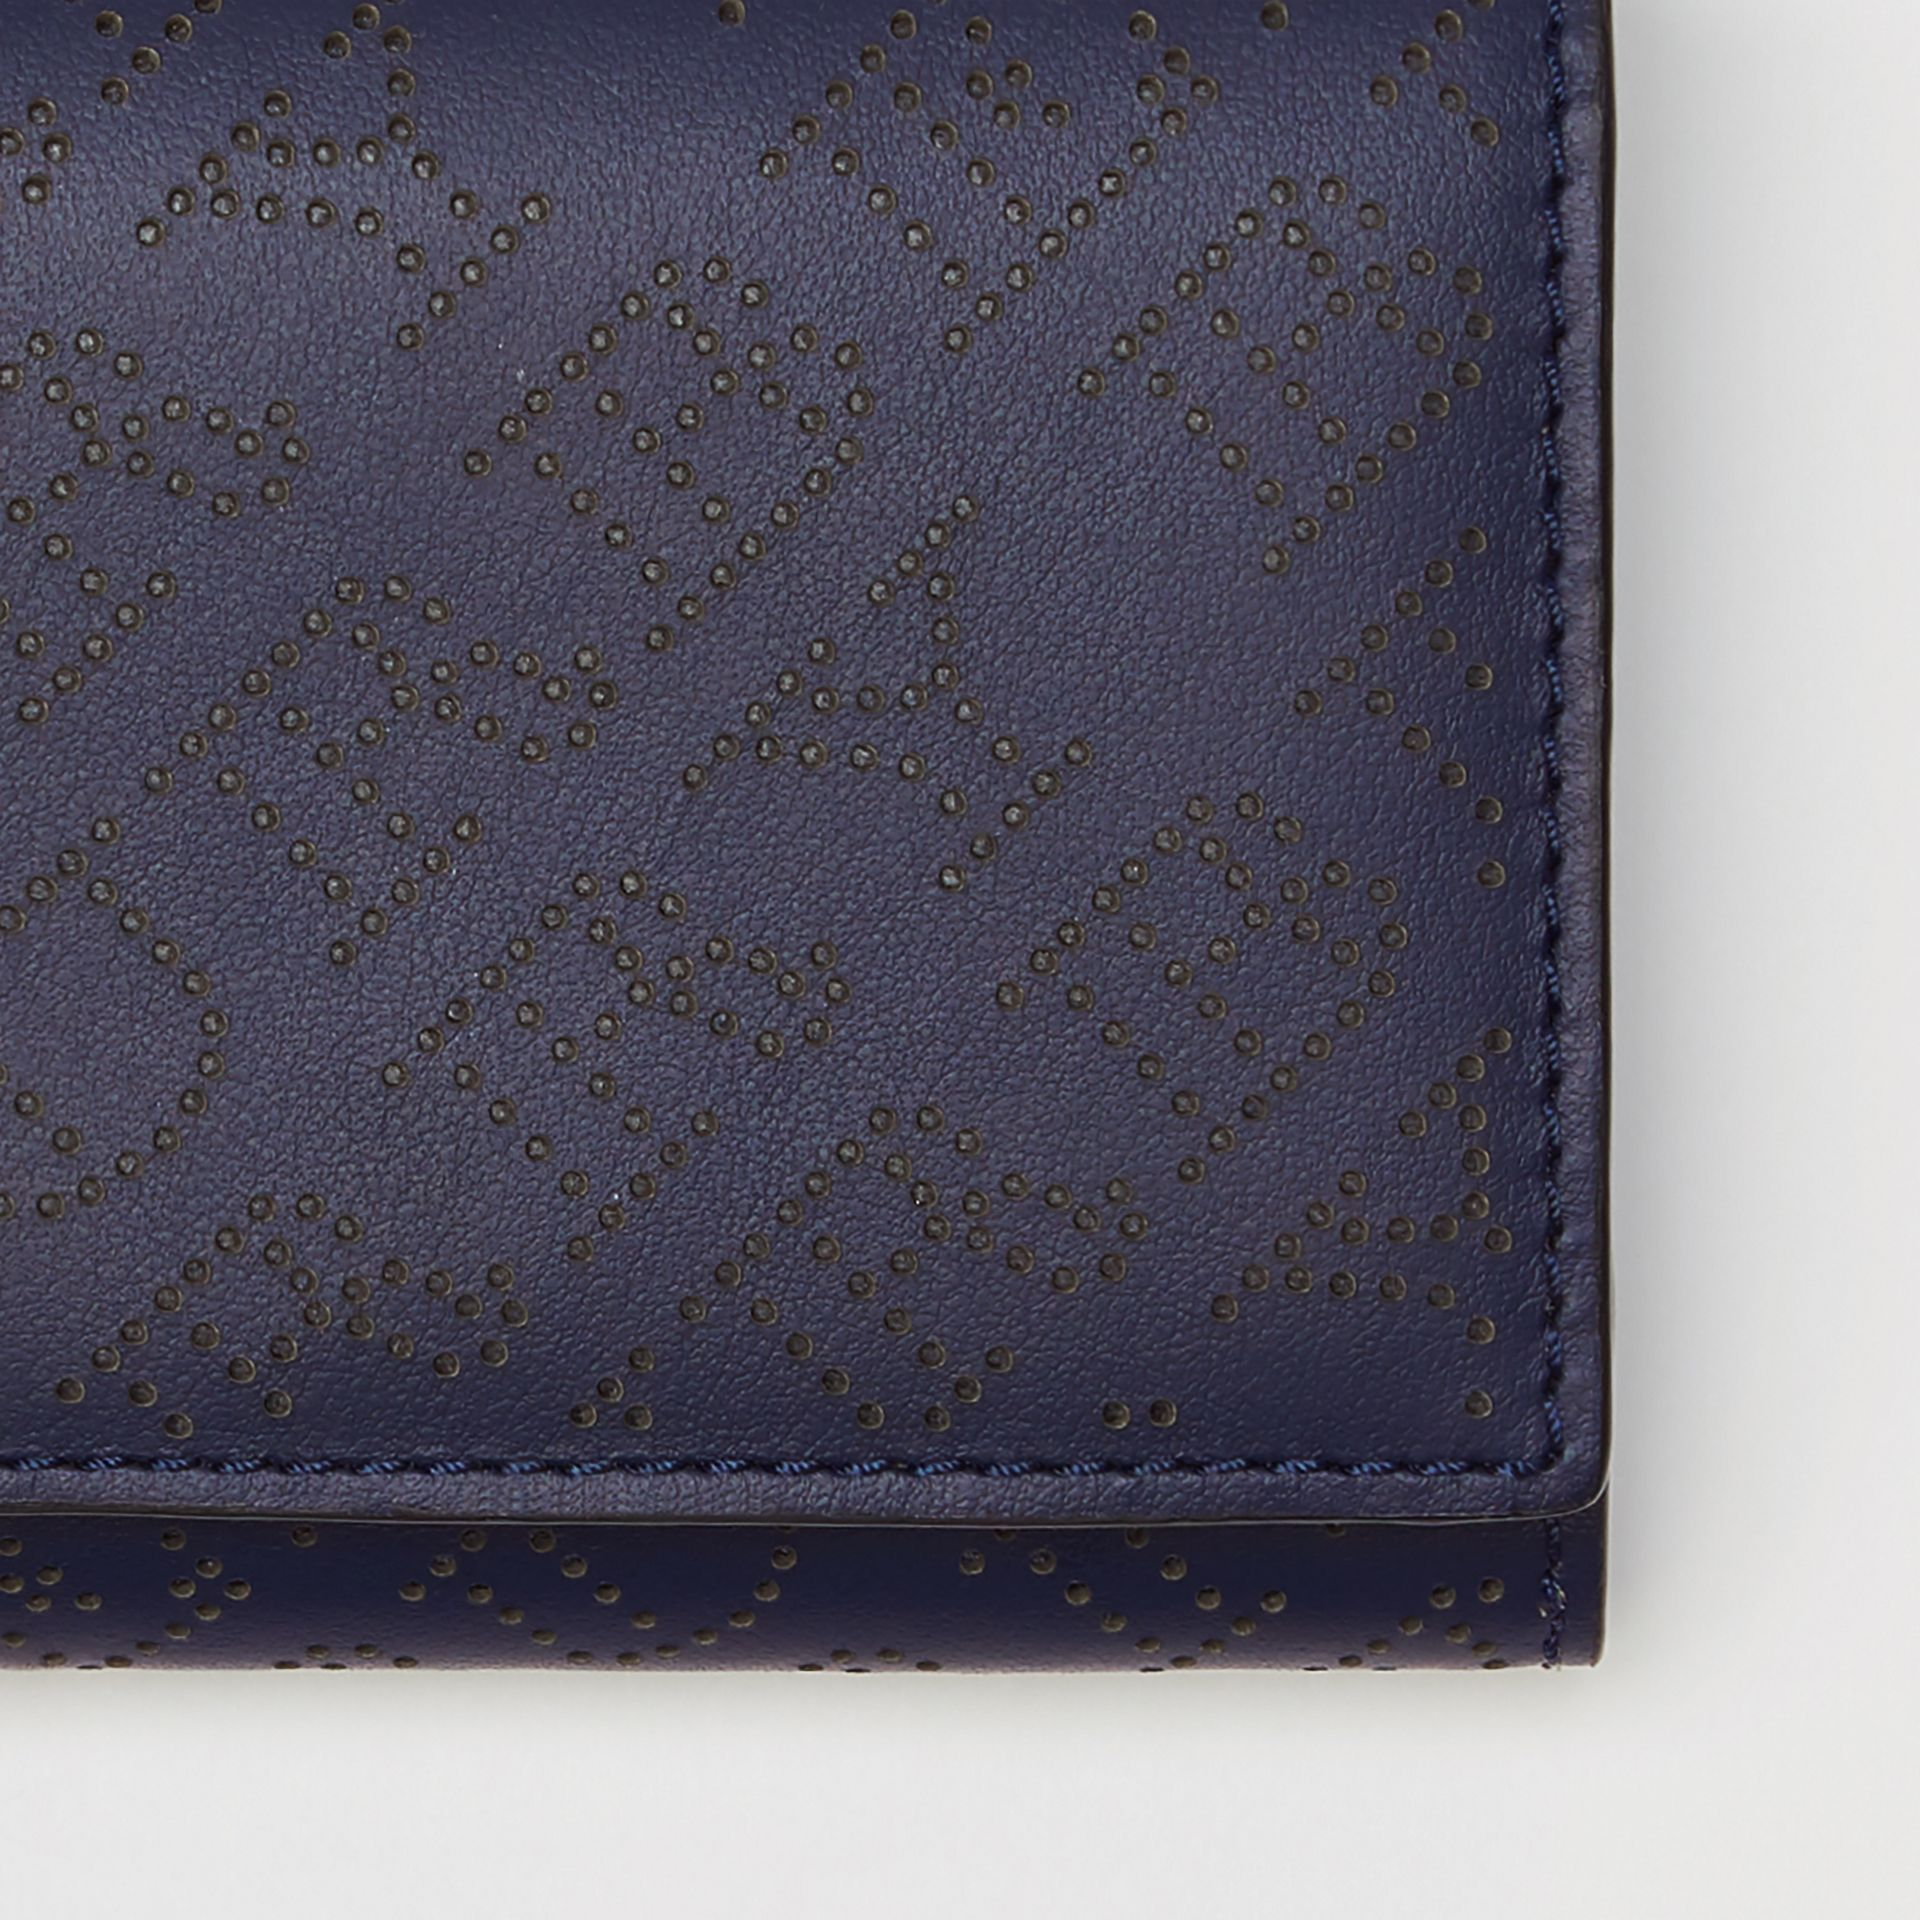 Small Perforated Logo Leather Wallet in Navy - Women | Burberry United Kingdom - gallery image 1